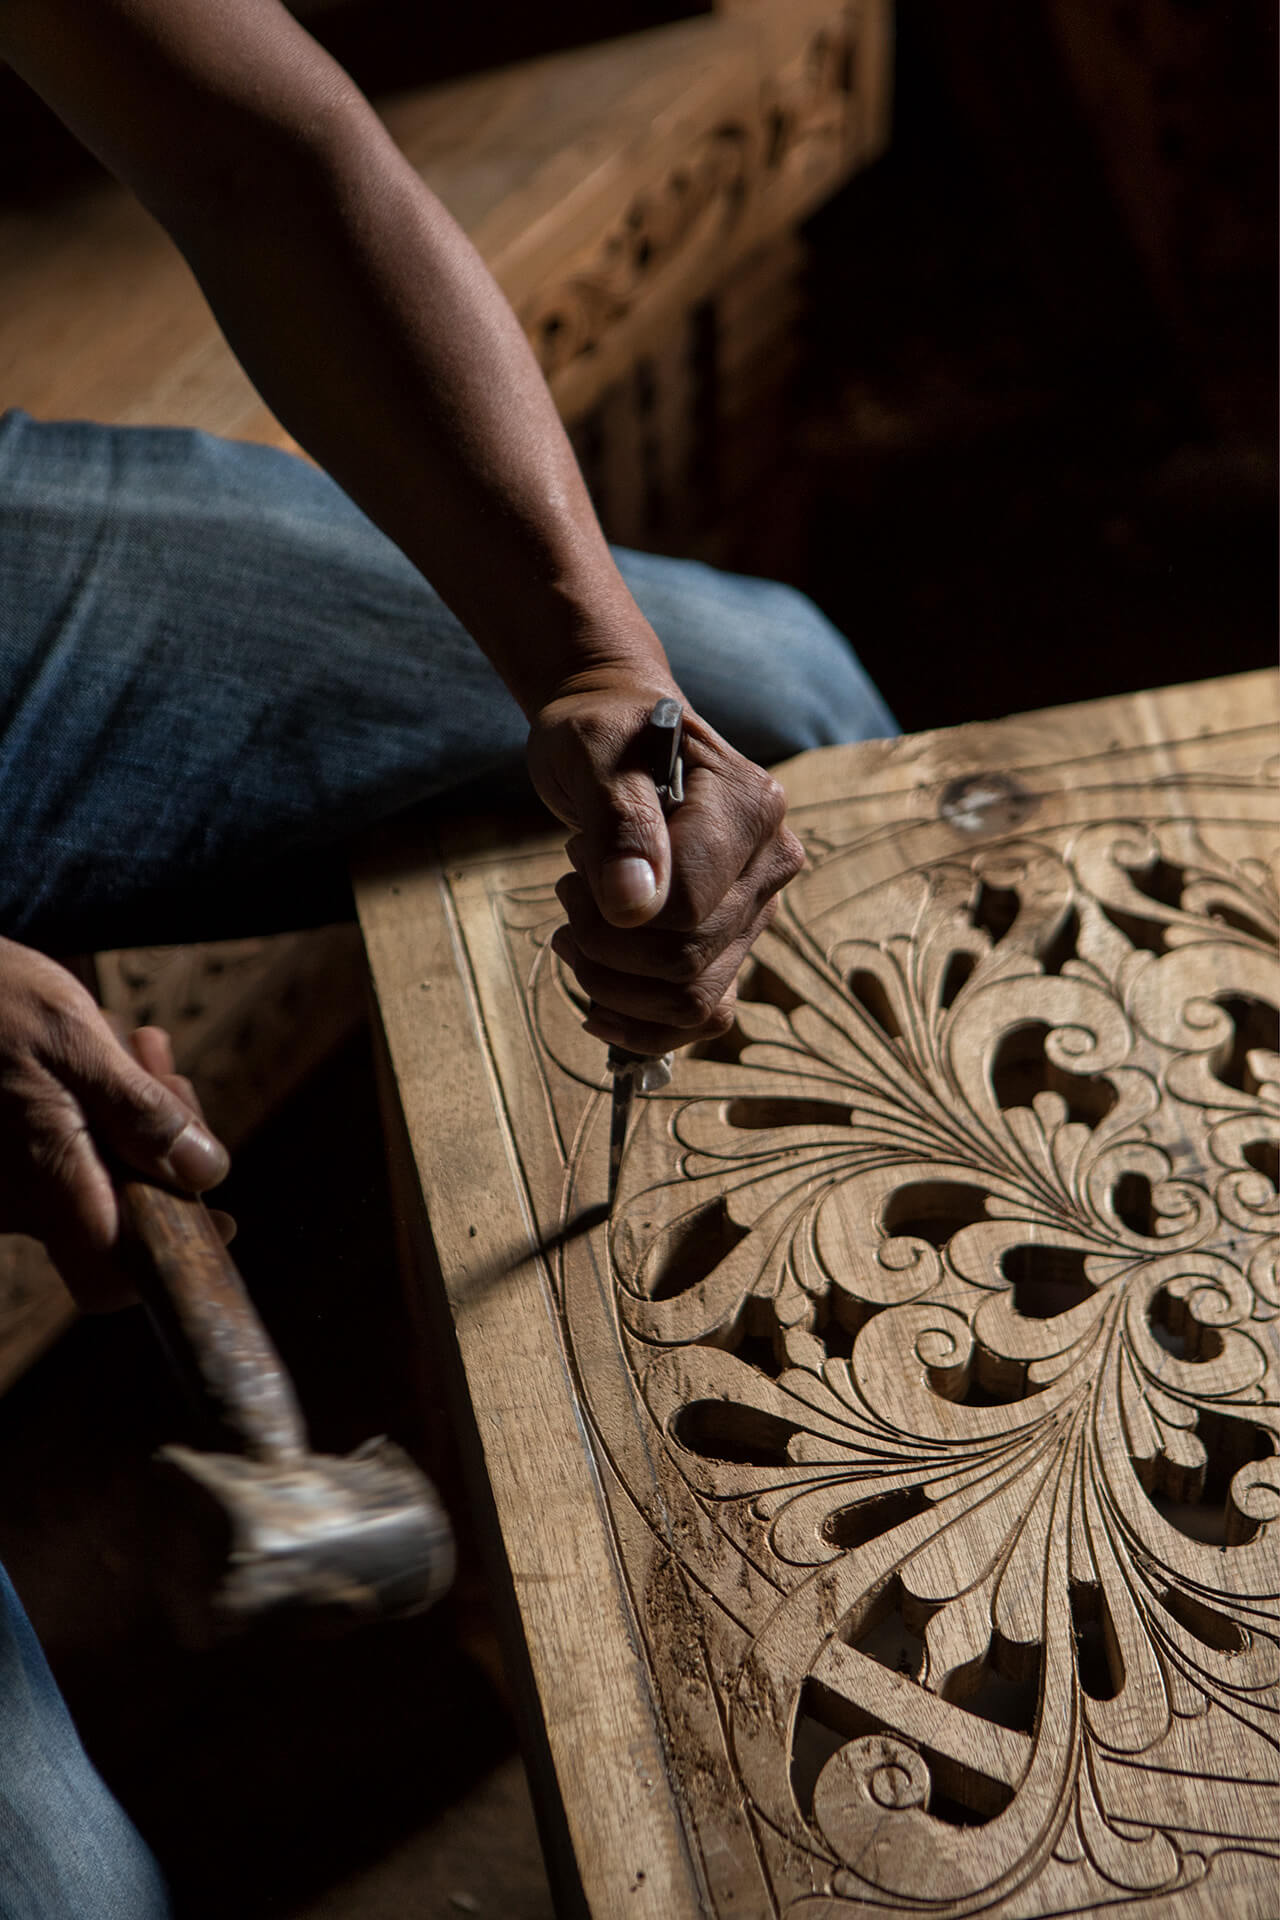 A worksman in action: intricate wood carvings on a piece of furniture